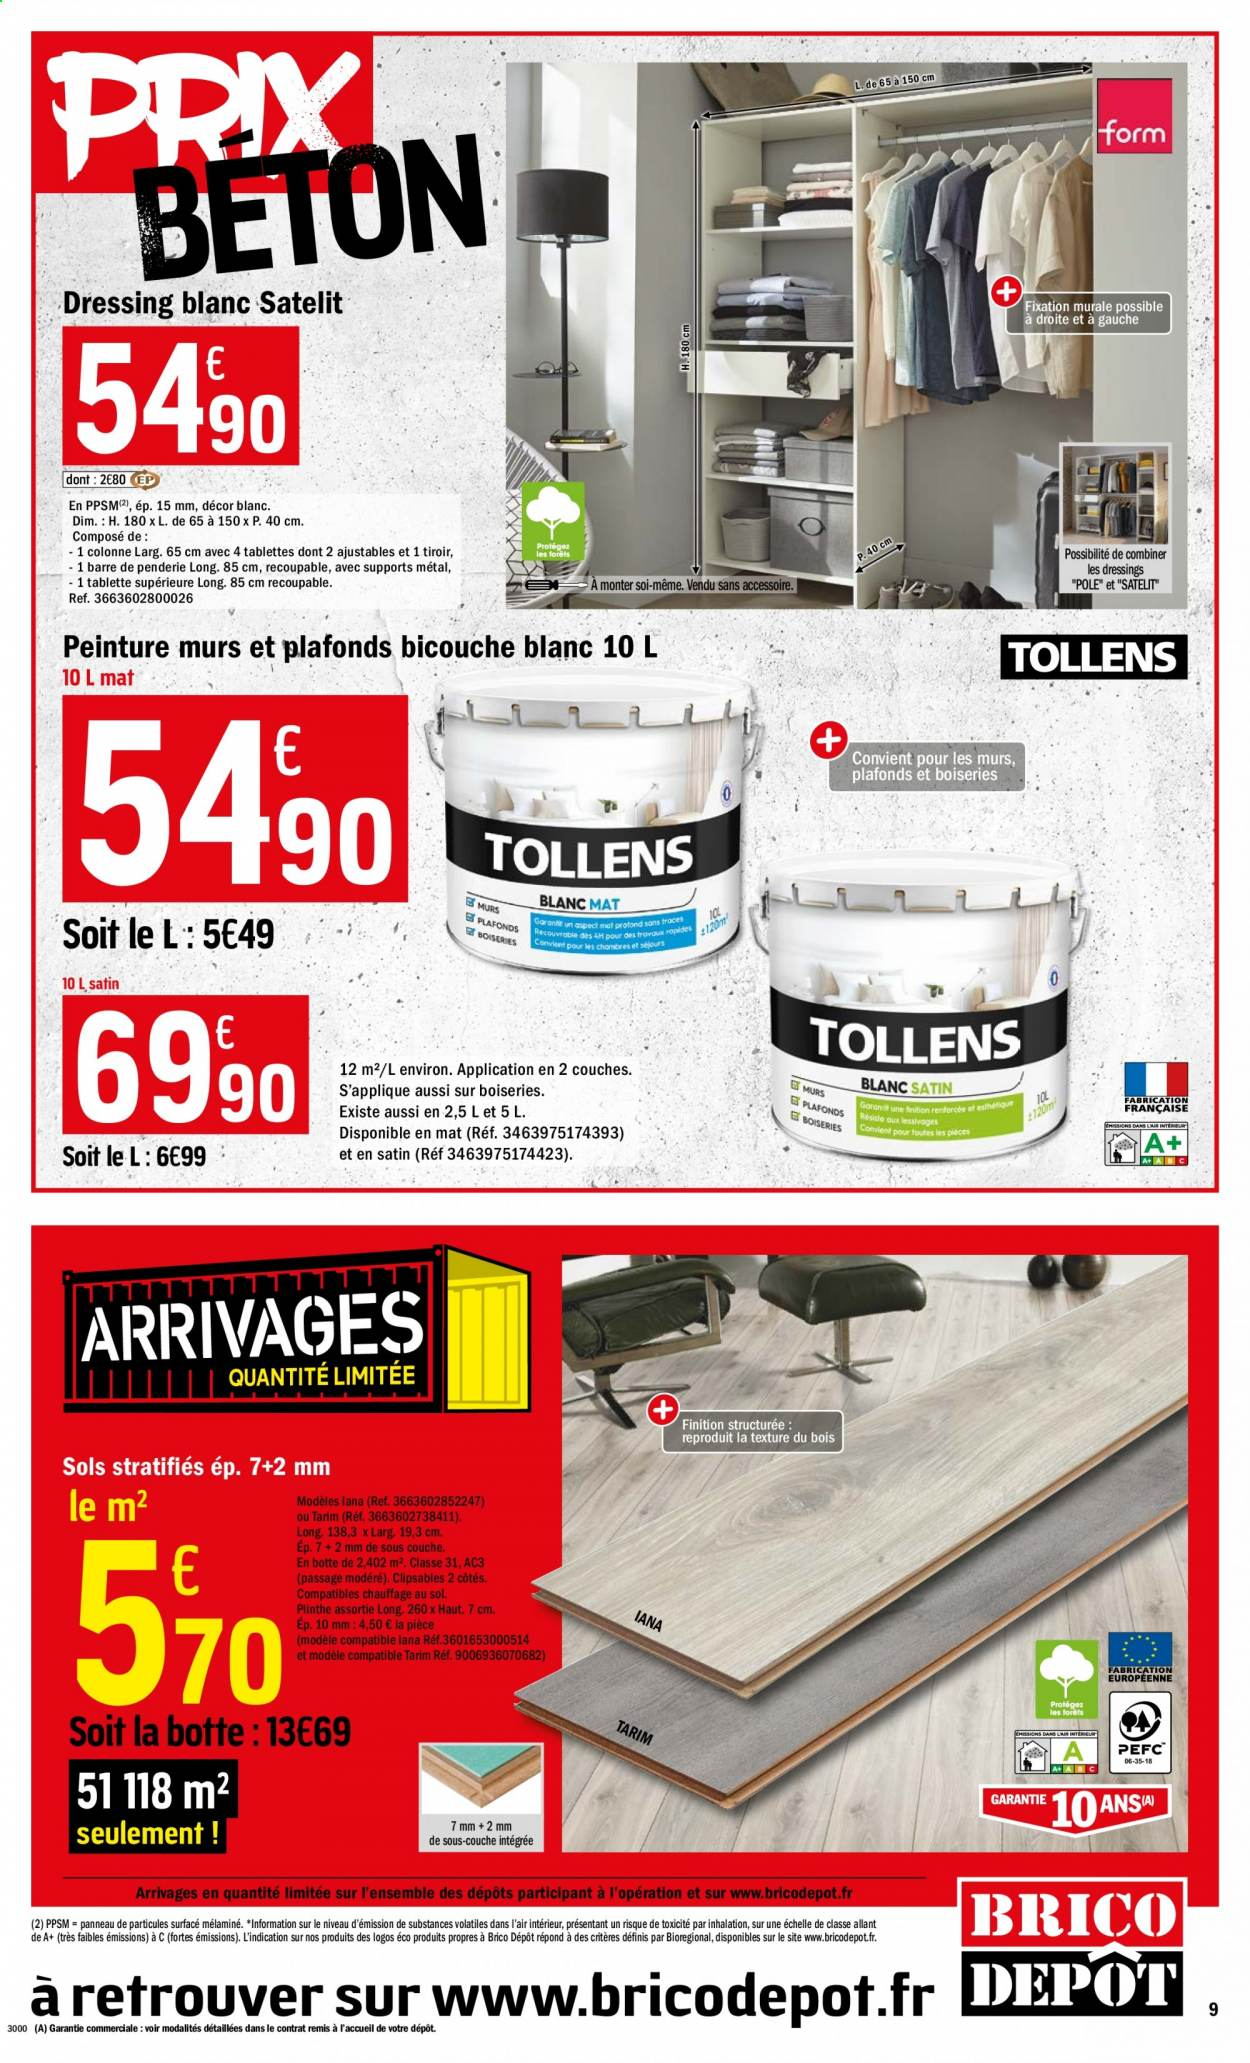 Catalogue Brico Depot 19 06 2020 09 07 2020 Page 9 Vos Promos